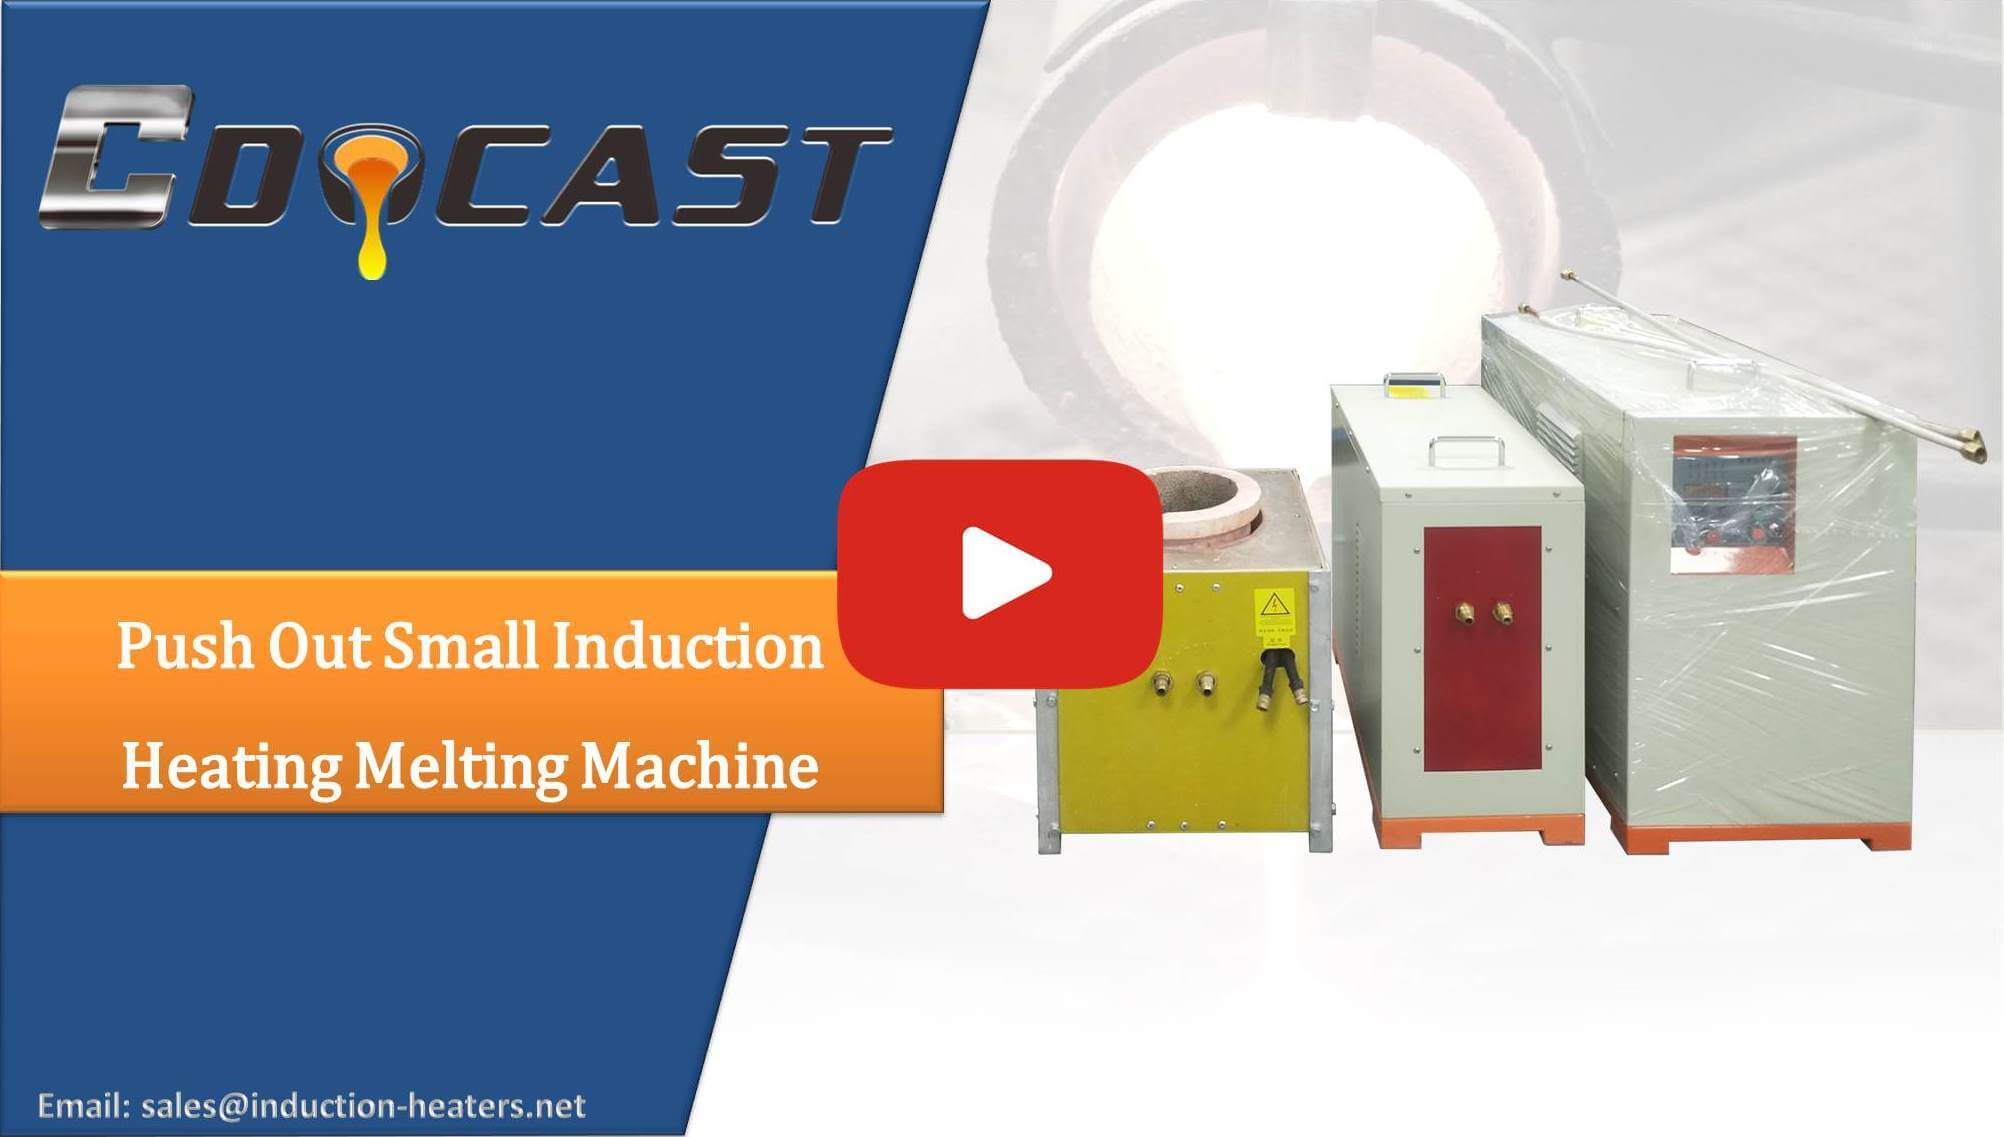 Push Out Small Induction Heating Melting Machine